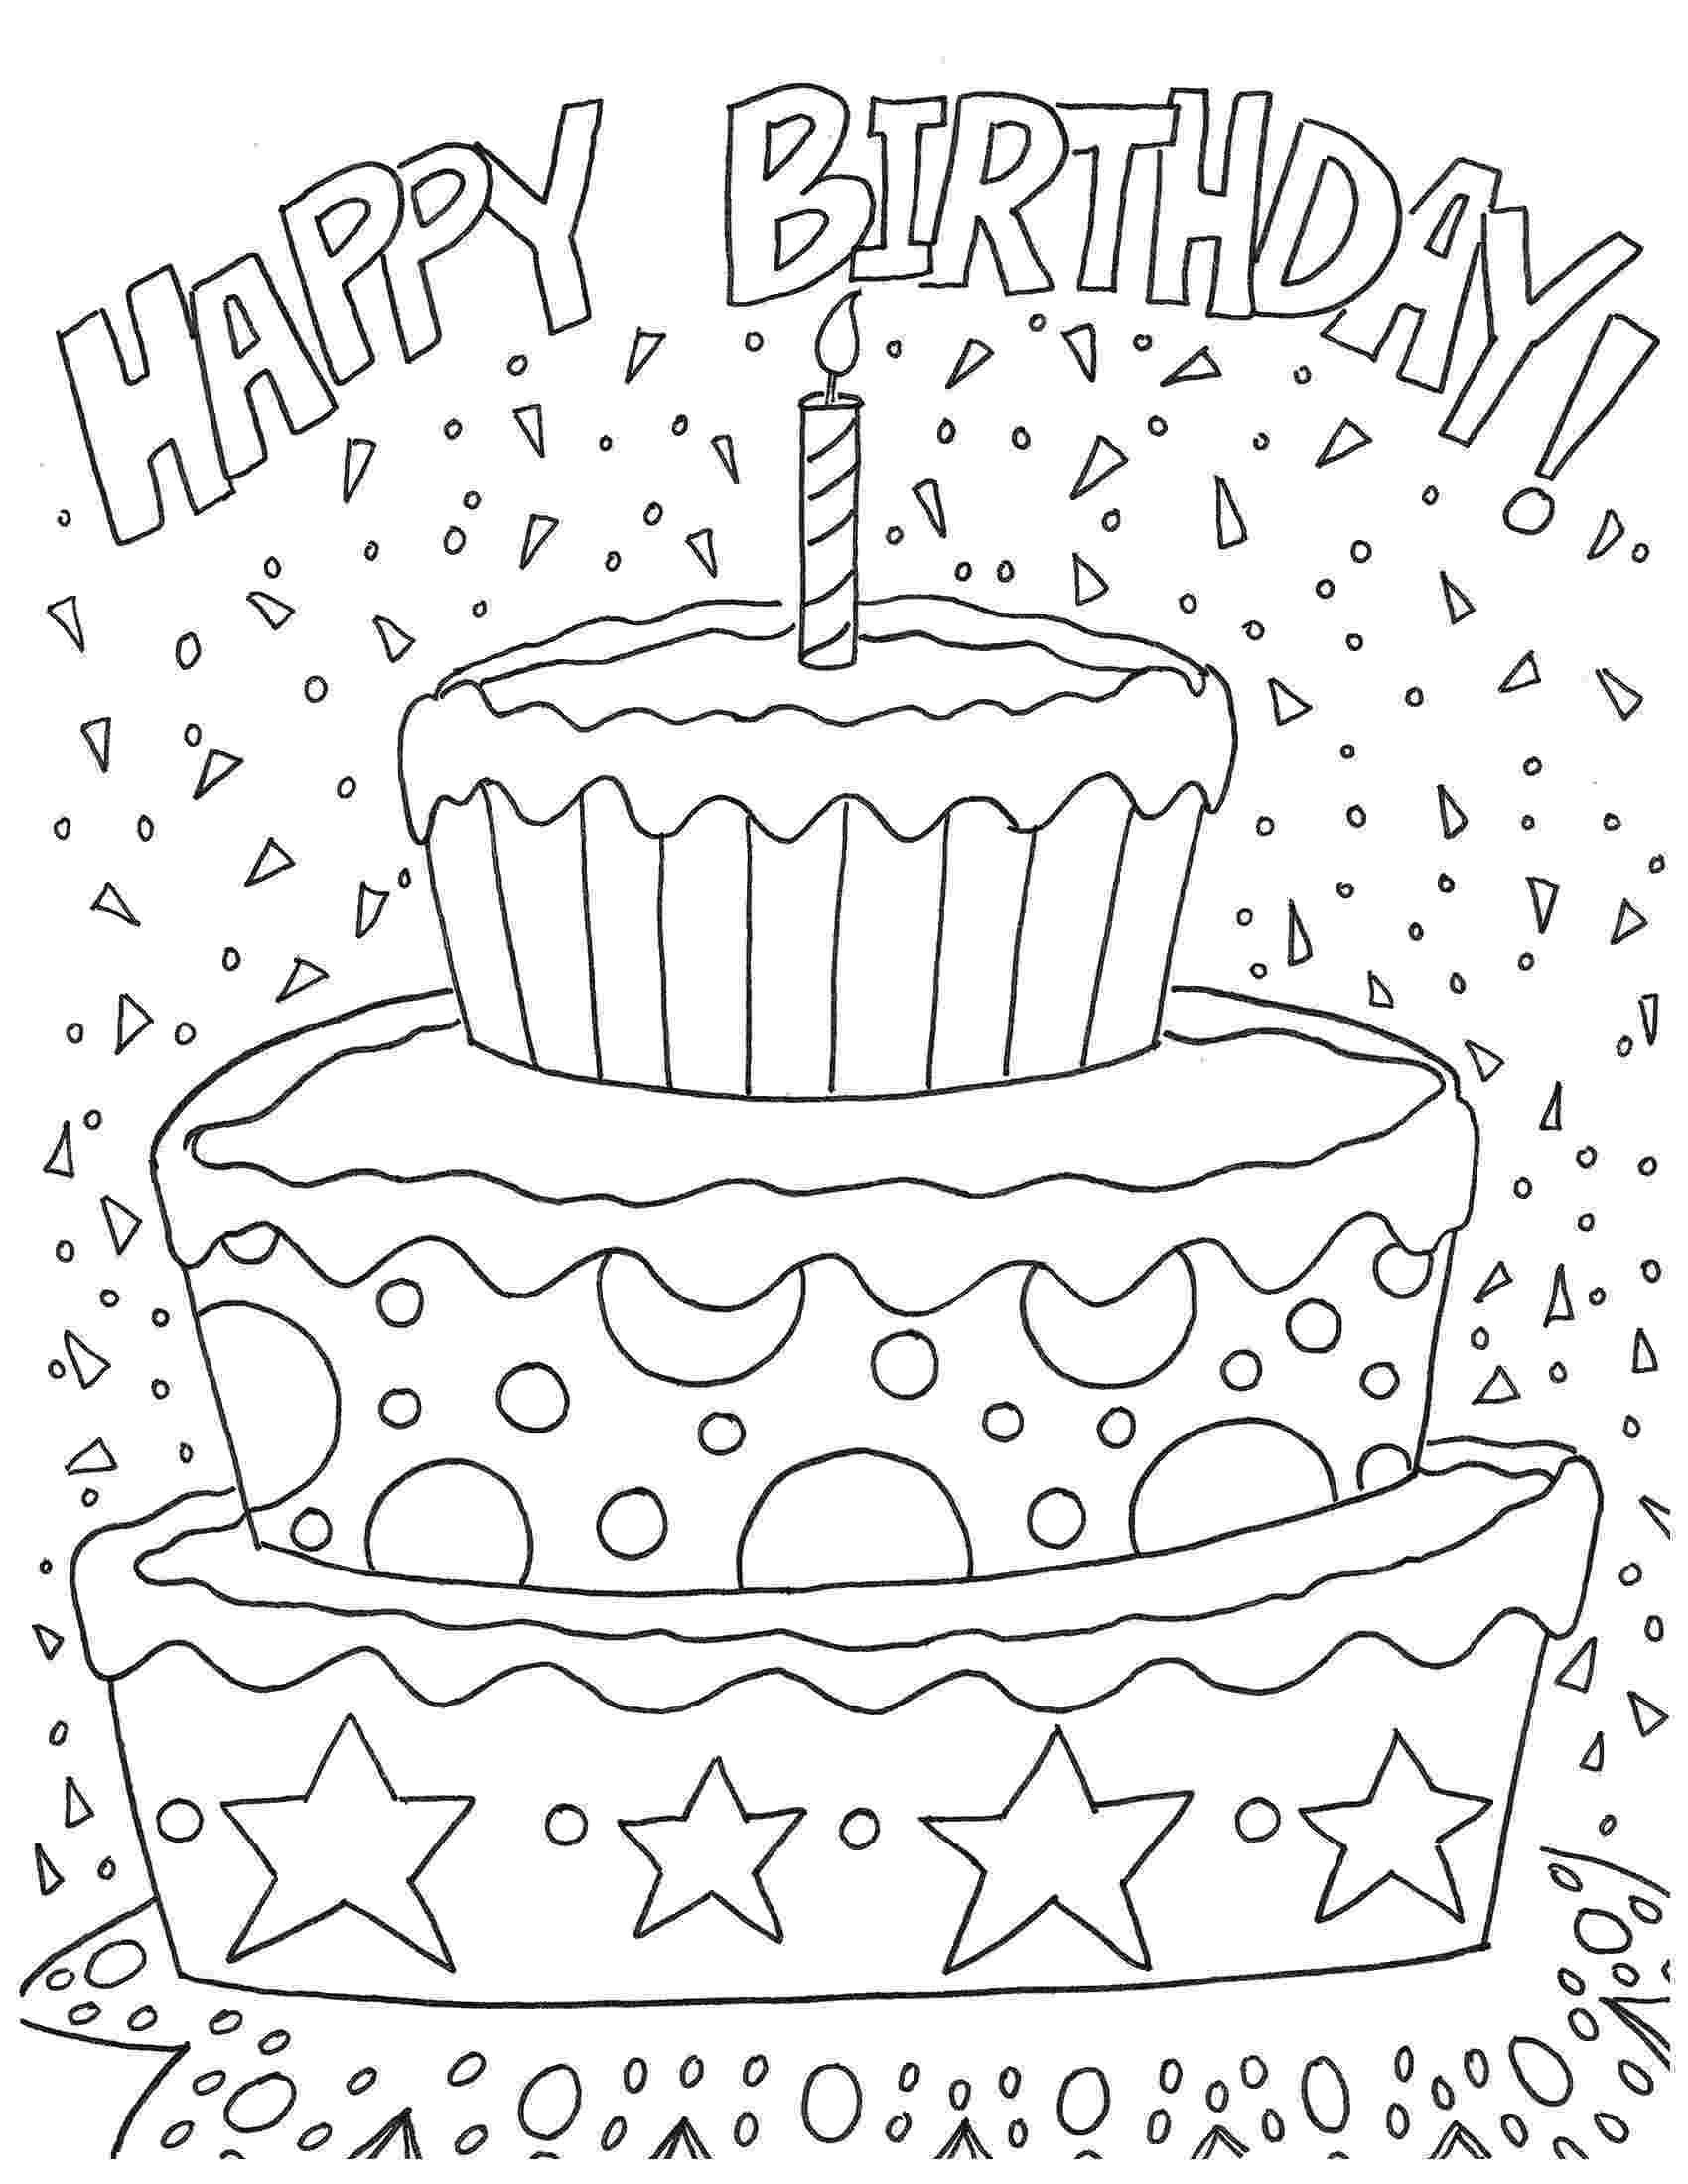 birthday card coloring page print out one of these birthday card coloring pages to page coloring card birthday